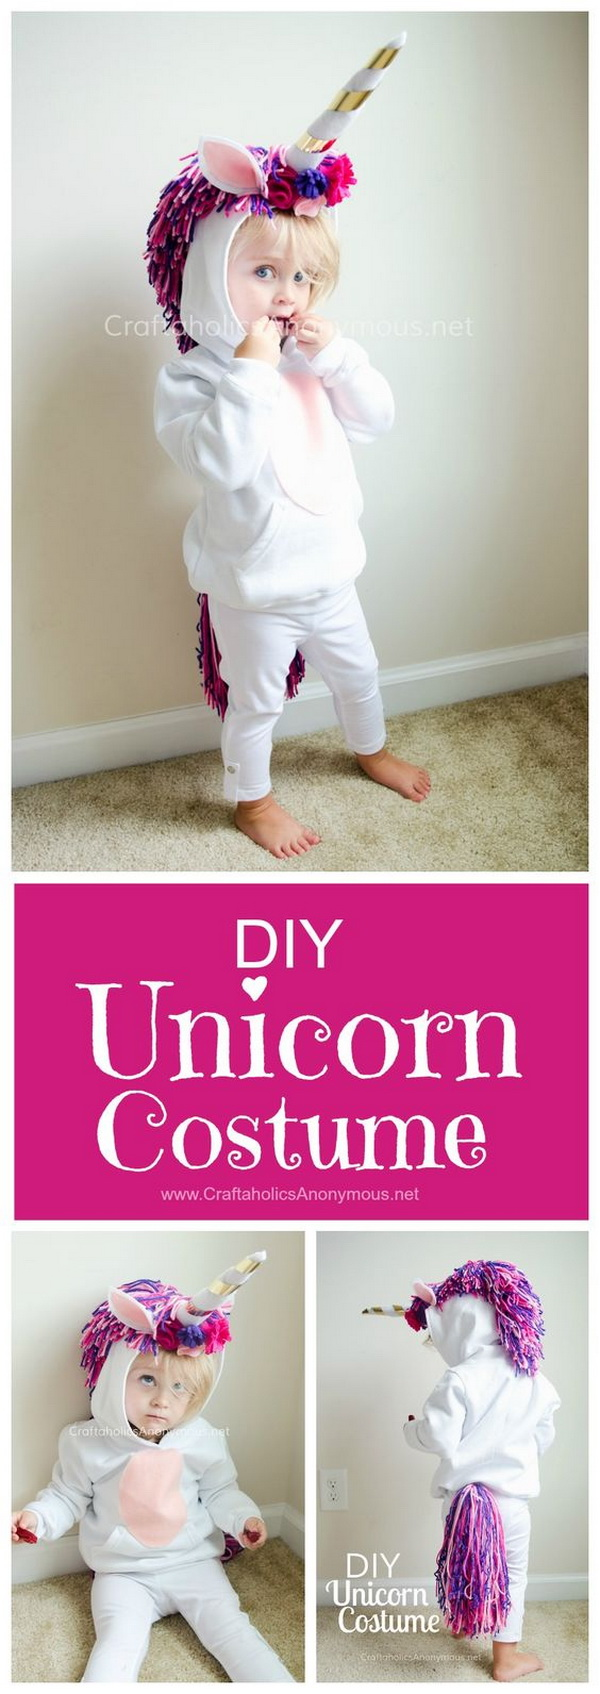 DIY Unicorn Costume for Kids.